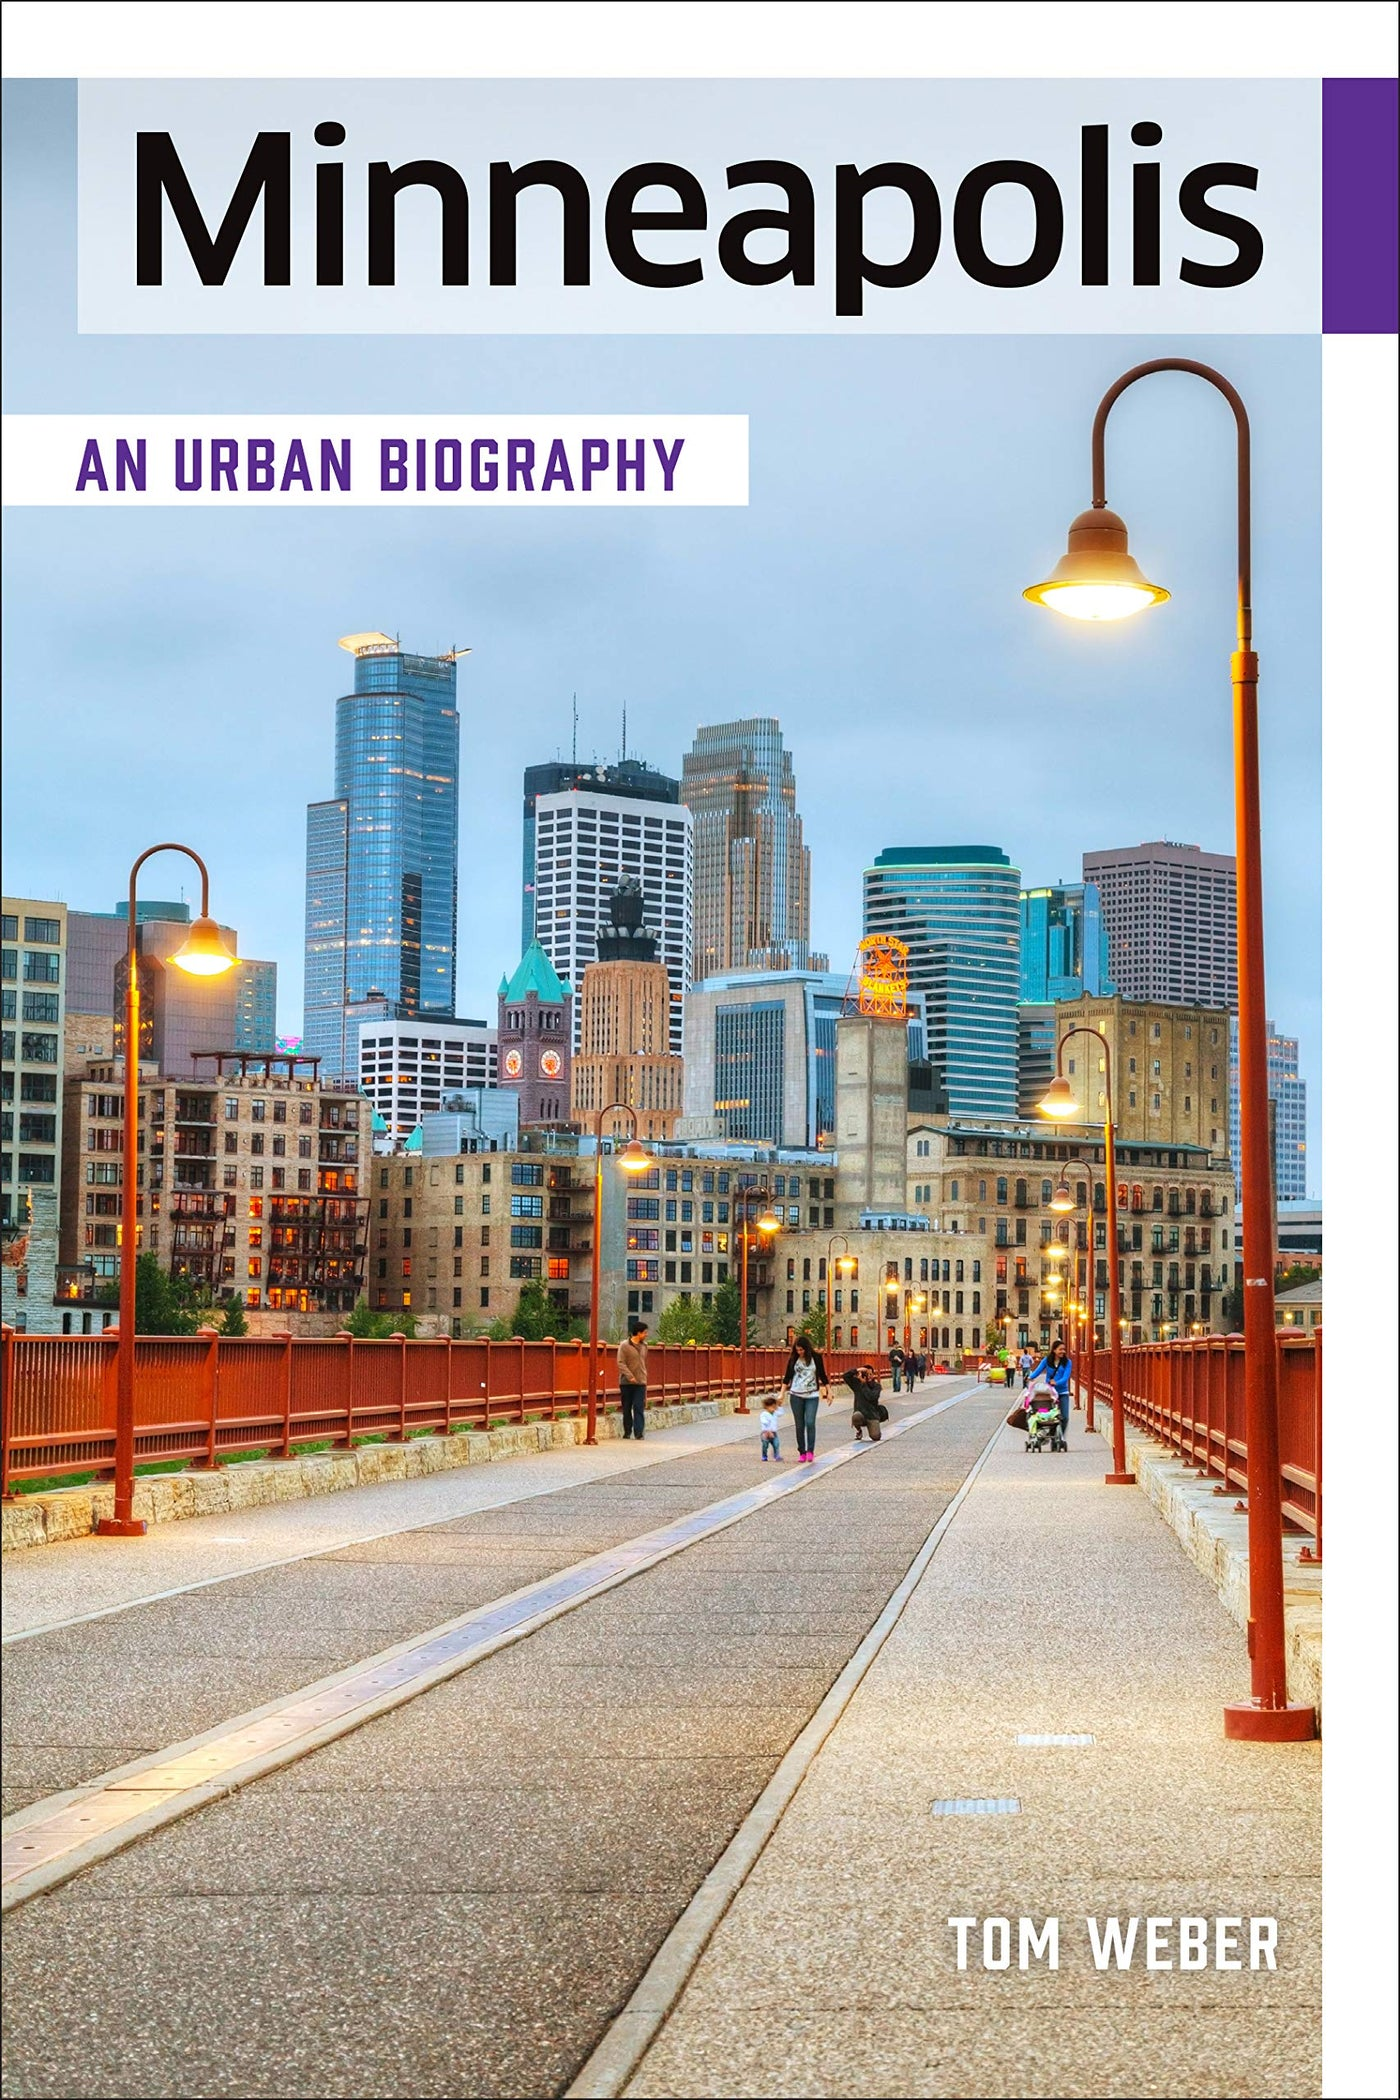 Minneapolis: An Urban Biography by Tom Weber